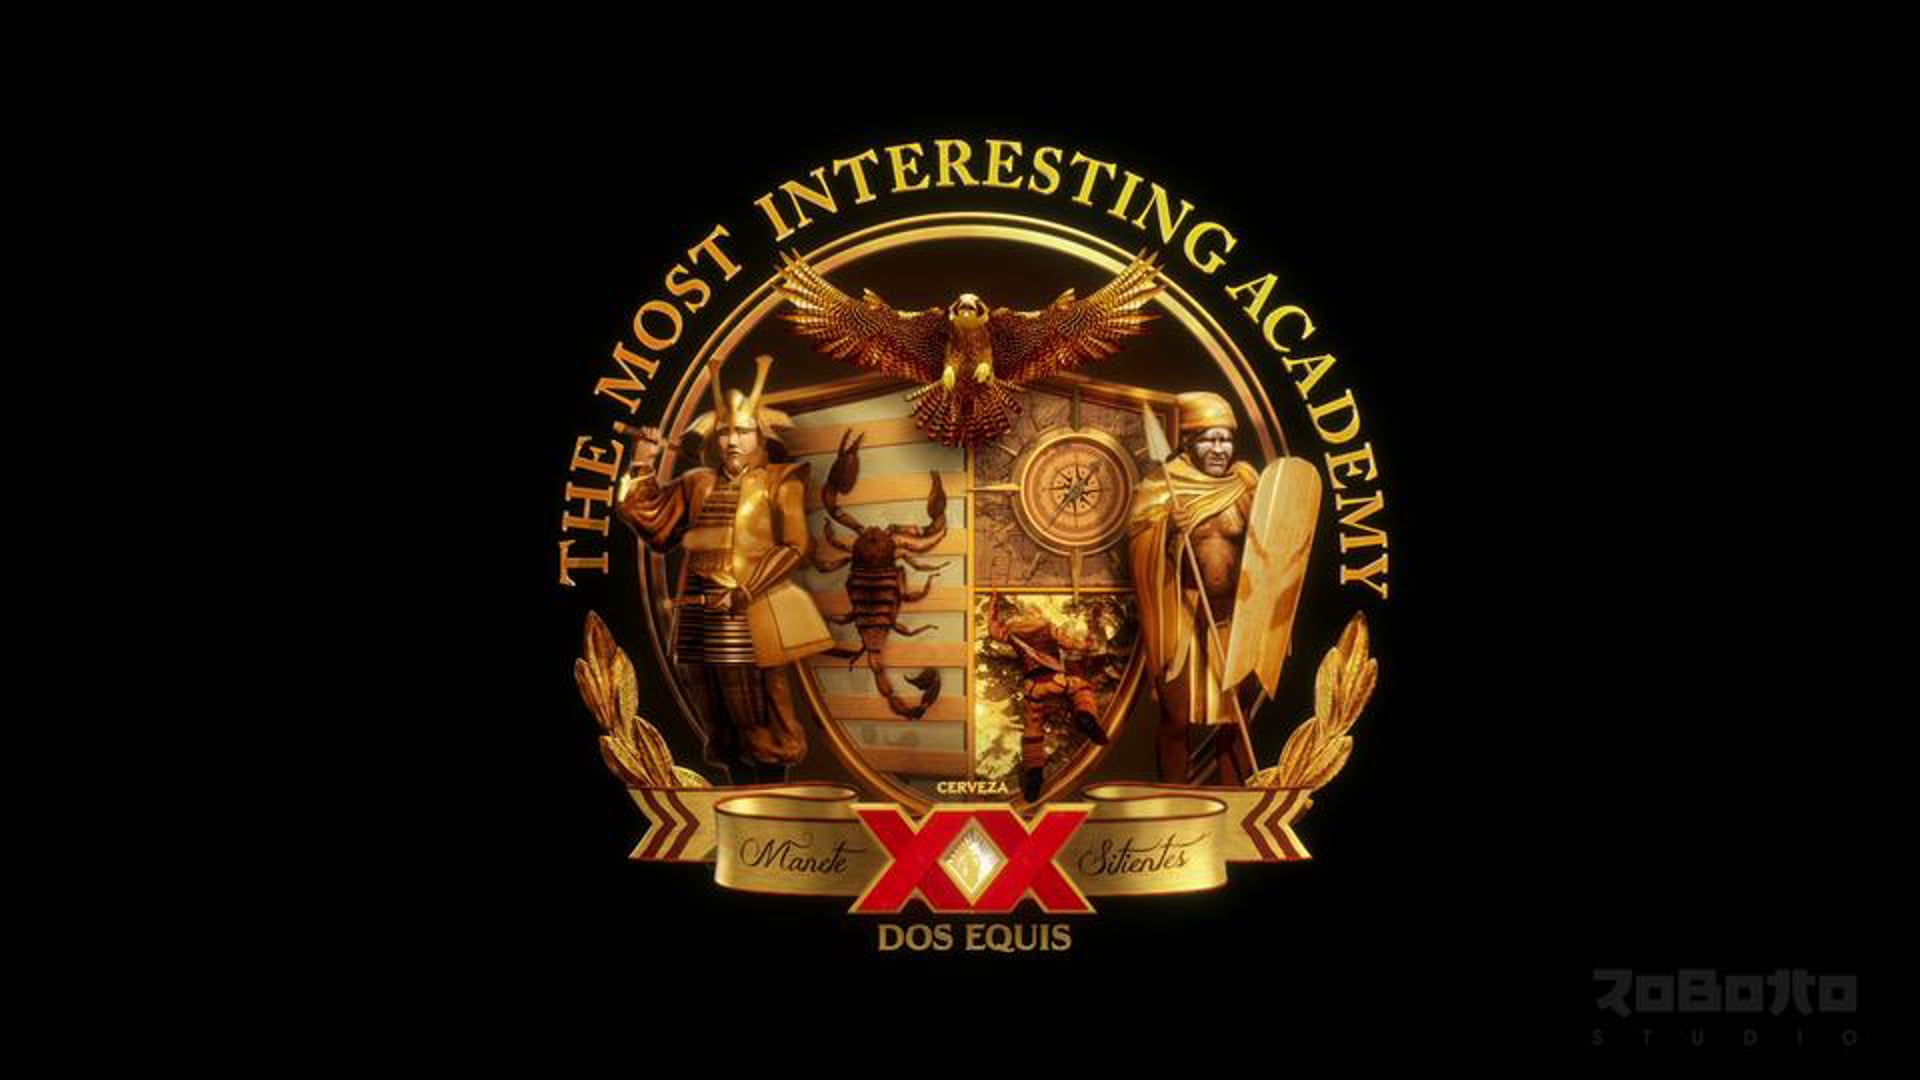 Dos Equis Beer - Most Interesting Academy